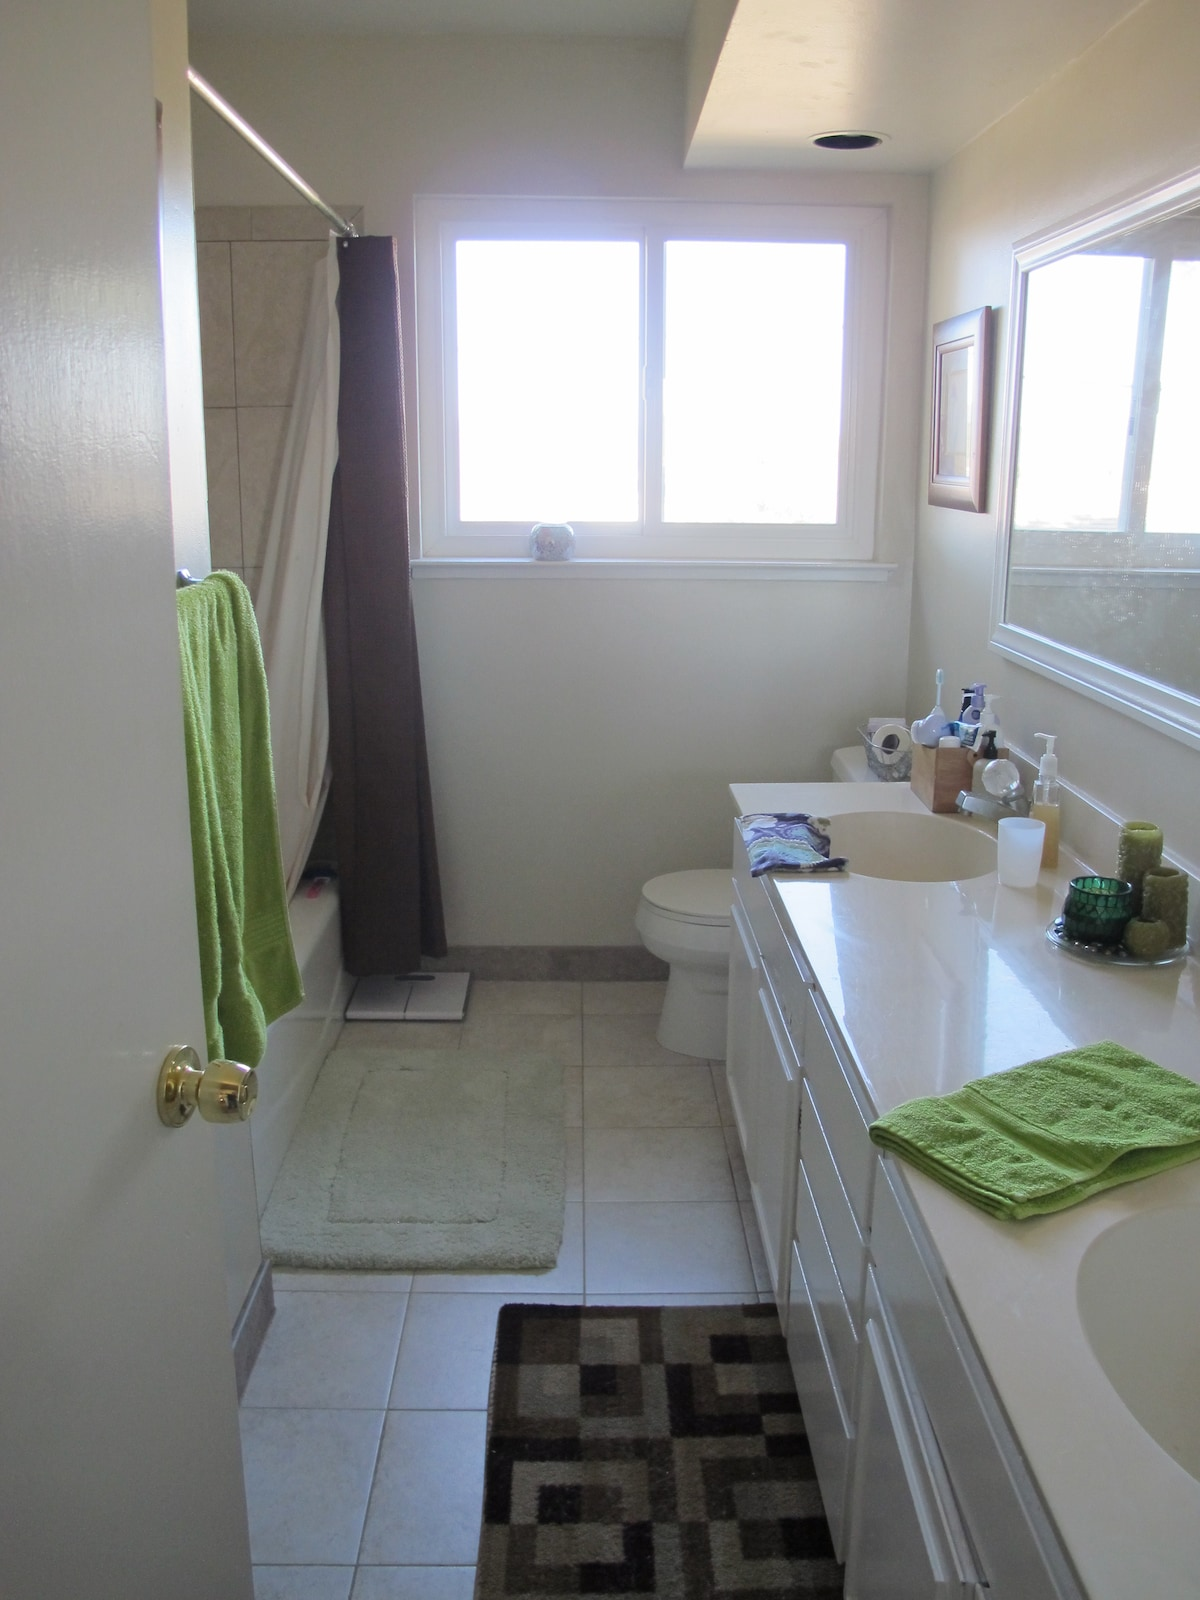 Shared bathroom with dual sinks. The sink closest to the door is your private sink.